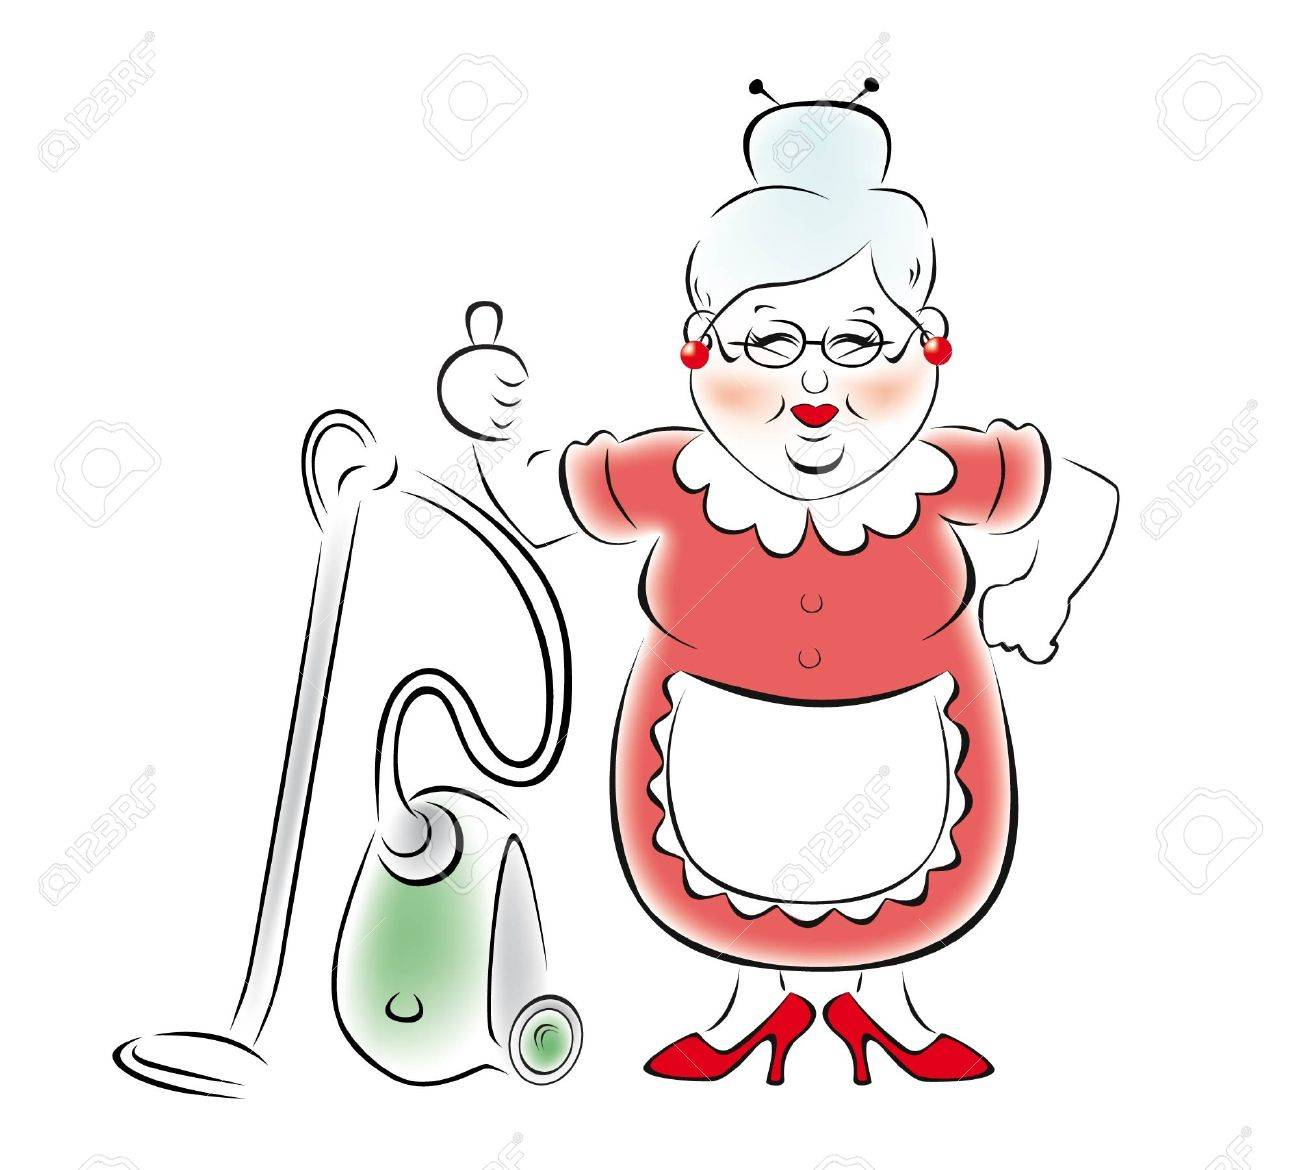 Illustration of a smiling grandmother with a vacuum cleaner. Stock Vector - 17474053